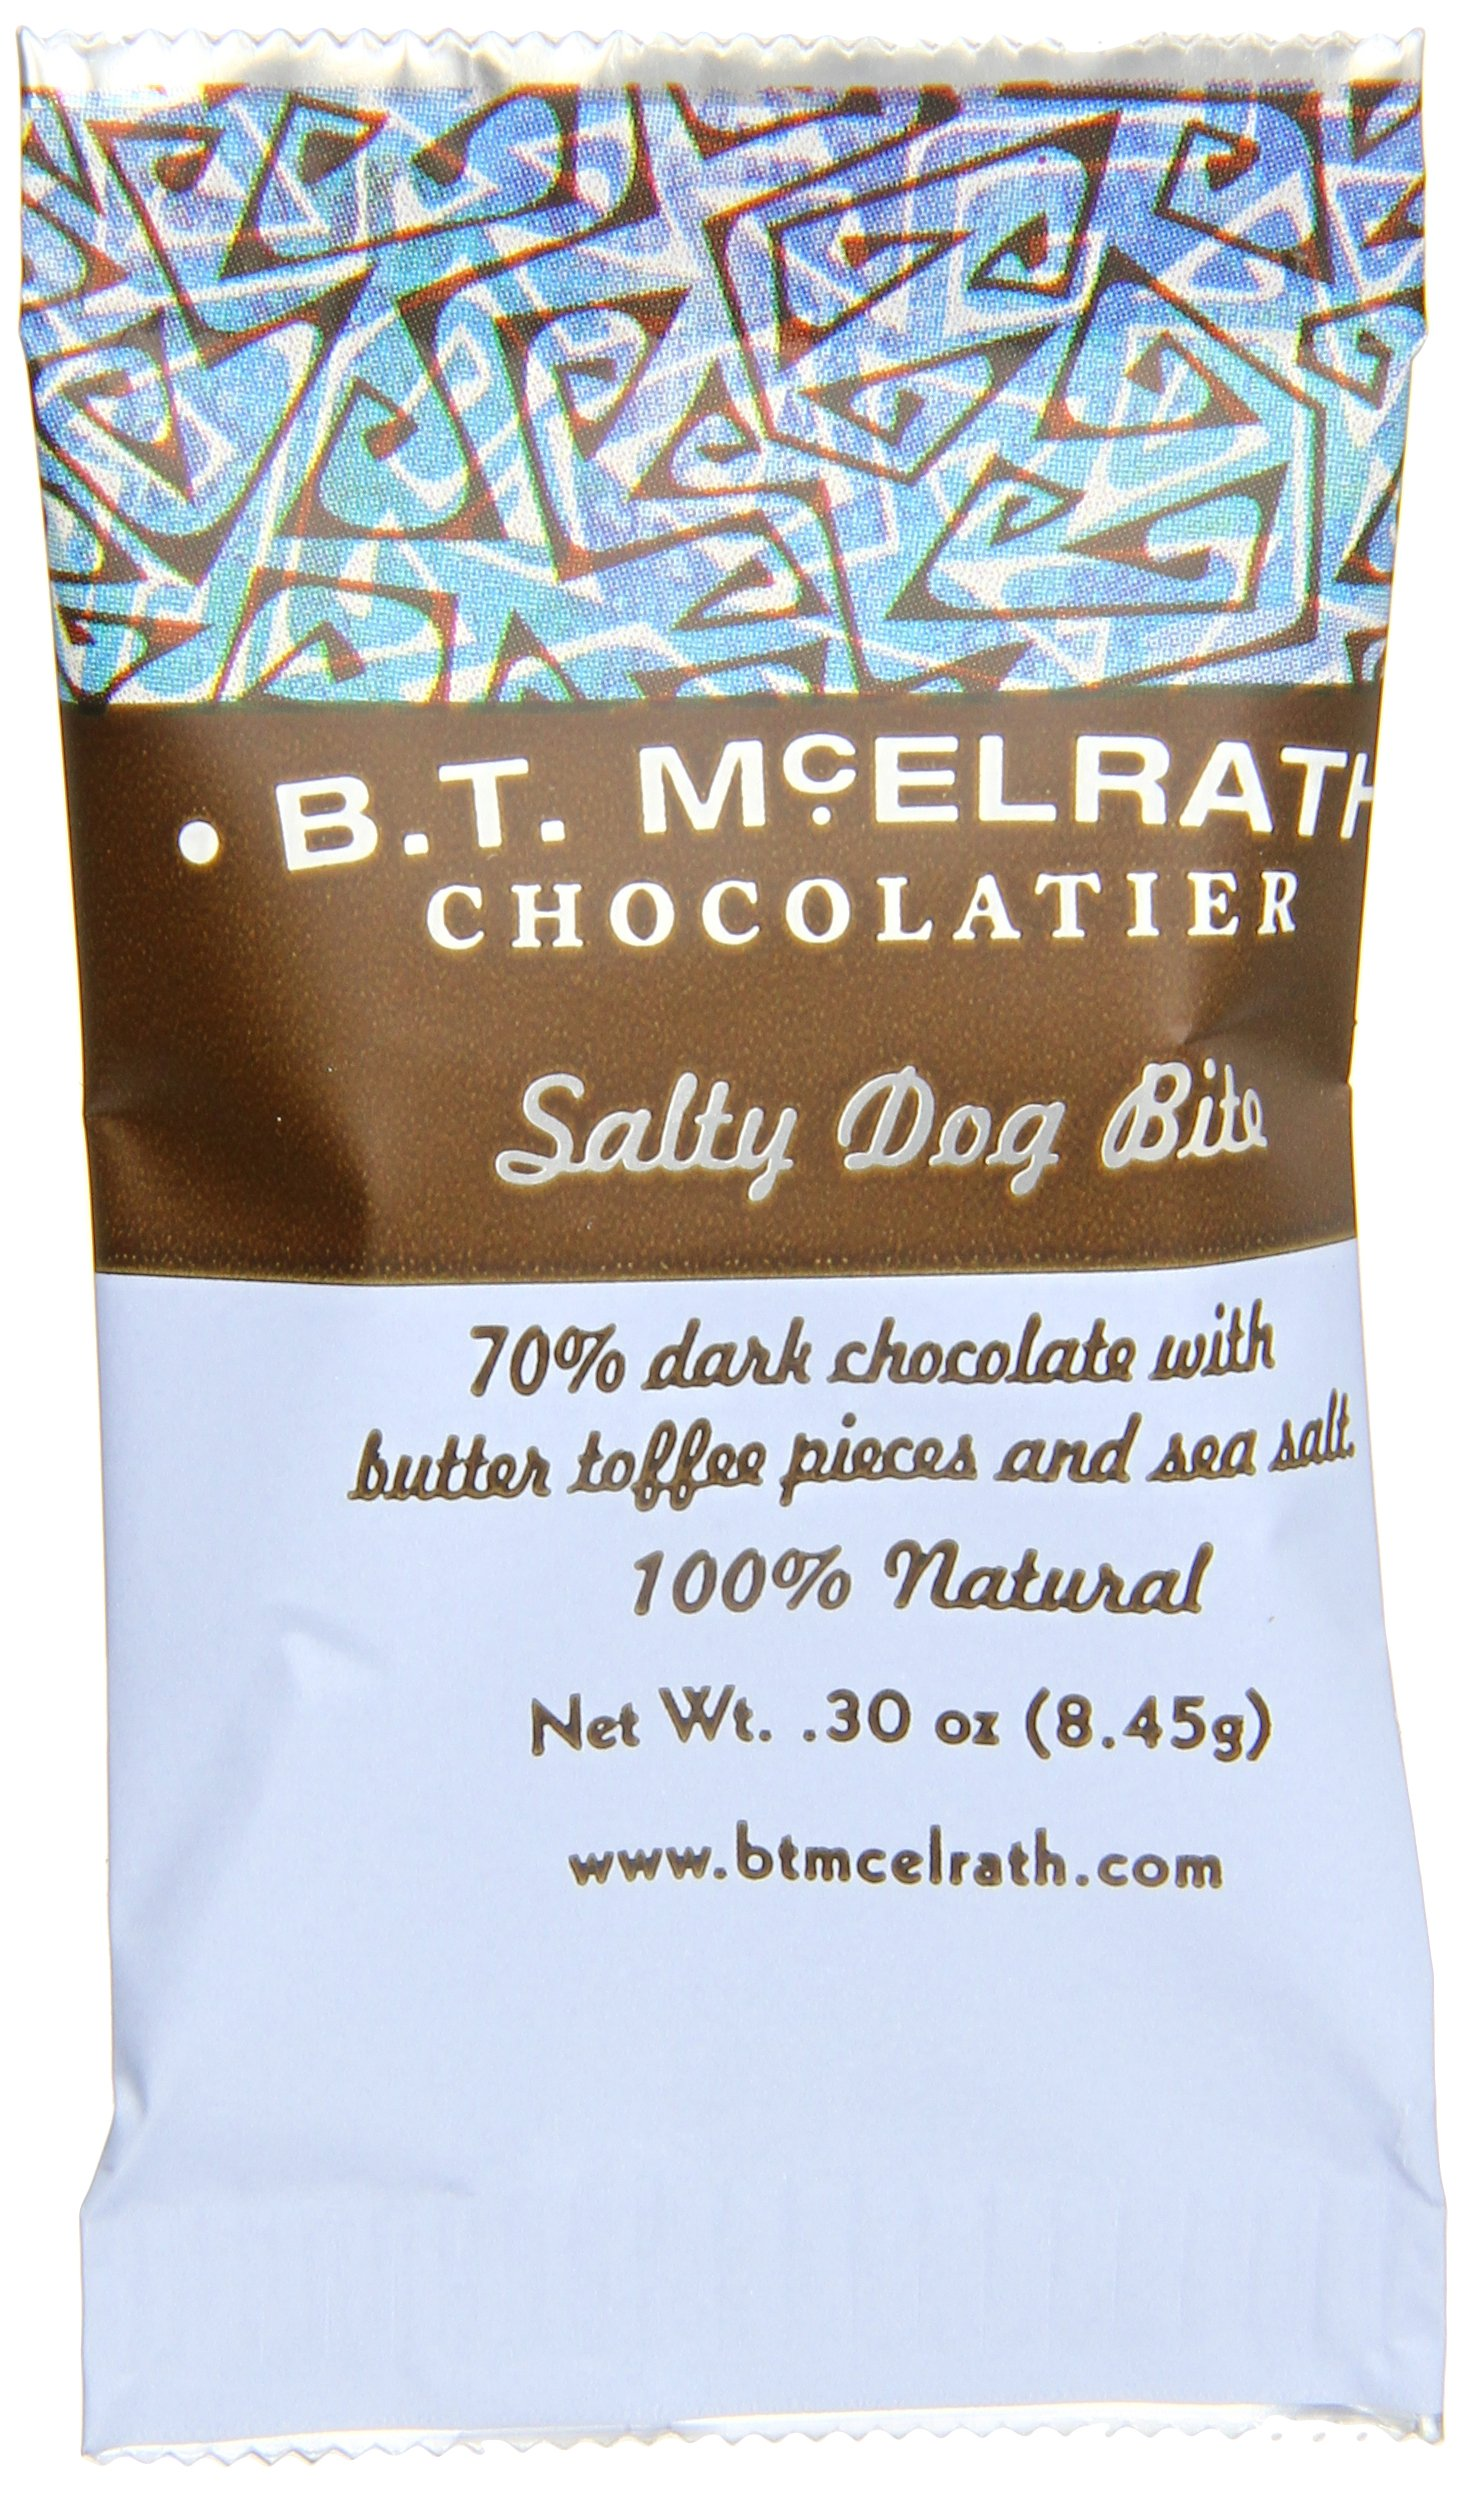 B.T. McElrath Chocolate Bite 70%, Salty Dog, .3 Ounce (Pack of 90) by Bt Mcelrath (Image #1)